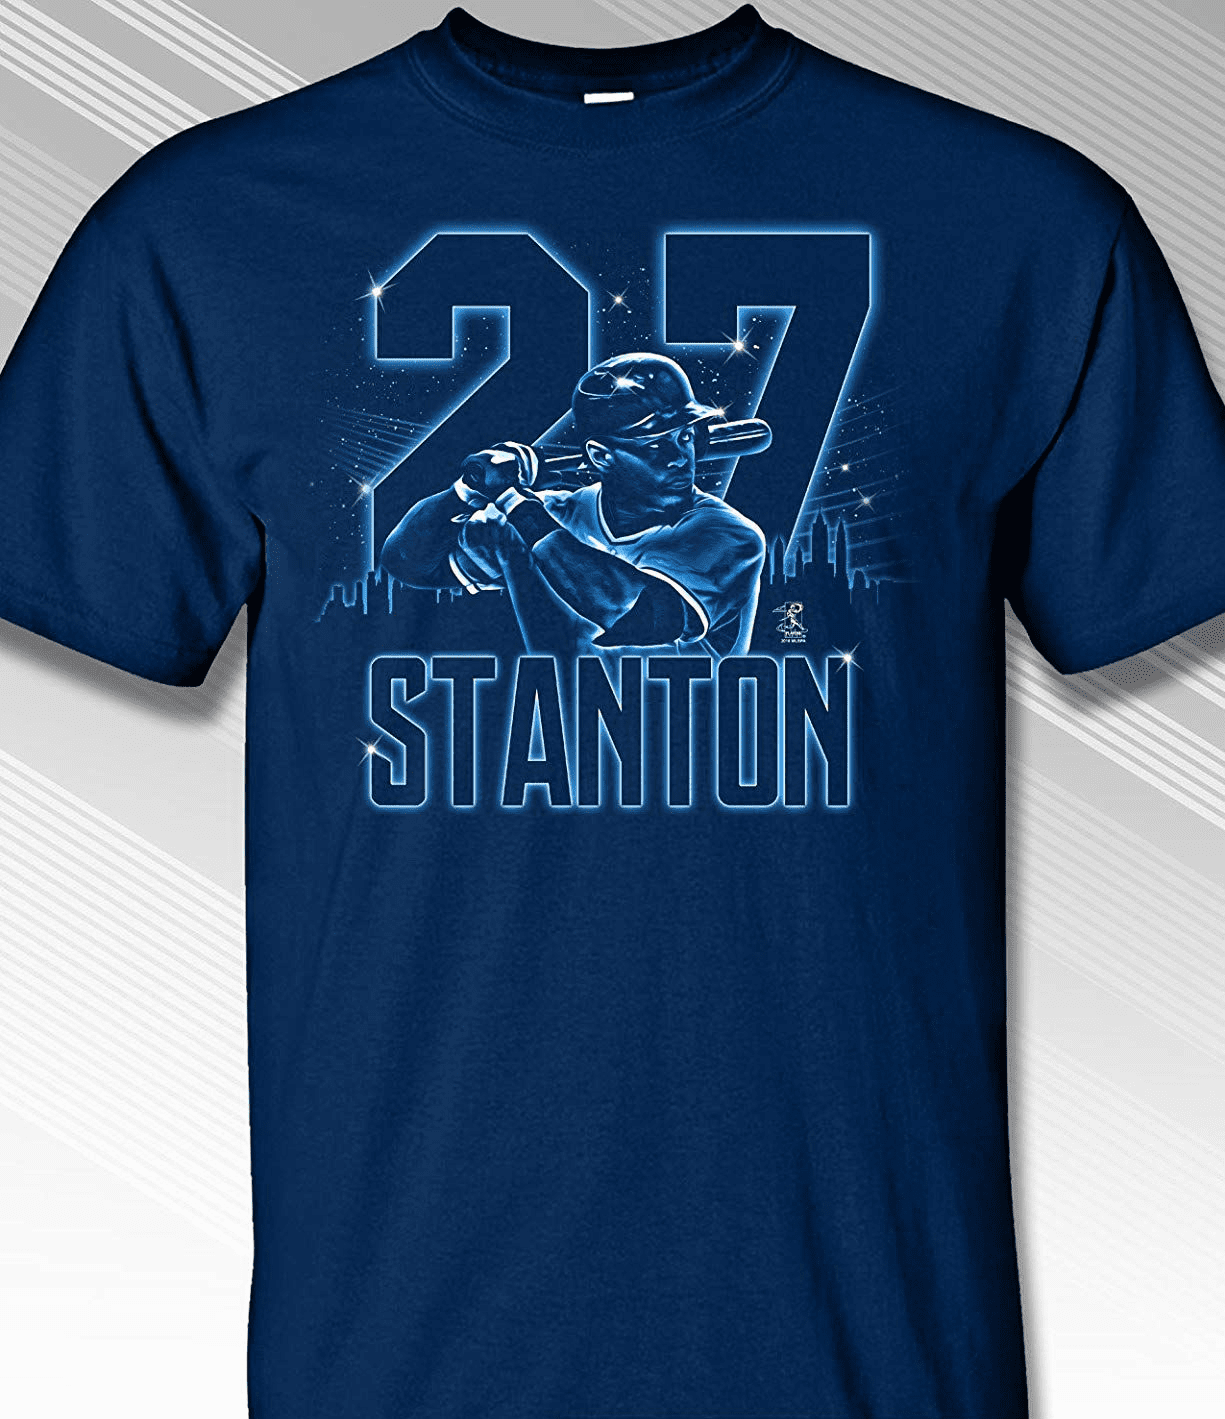 Giancarlo Stanton New York Neon Glow T-Shirt<br>Short or Long Sleeve<br>Youth Med to Adult 4X